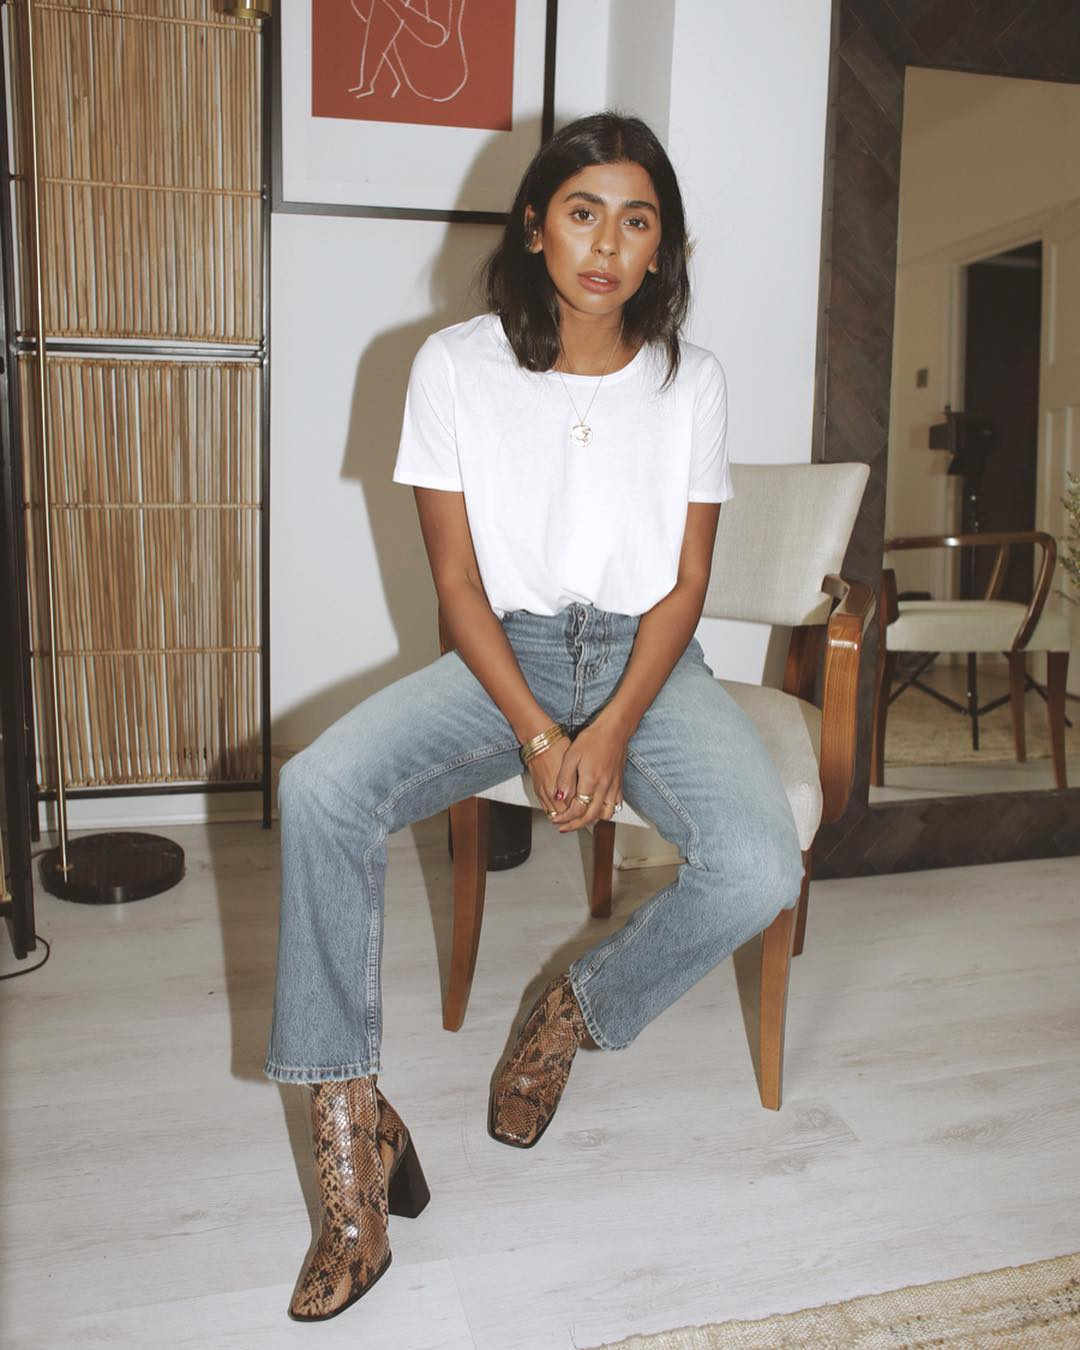 Spring Instagram Outfit Idea: Monikh Dale in a white t-shirt, straight-leg jeans, and snake-print ankle boots